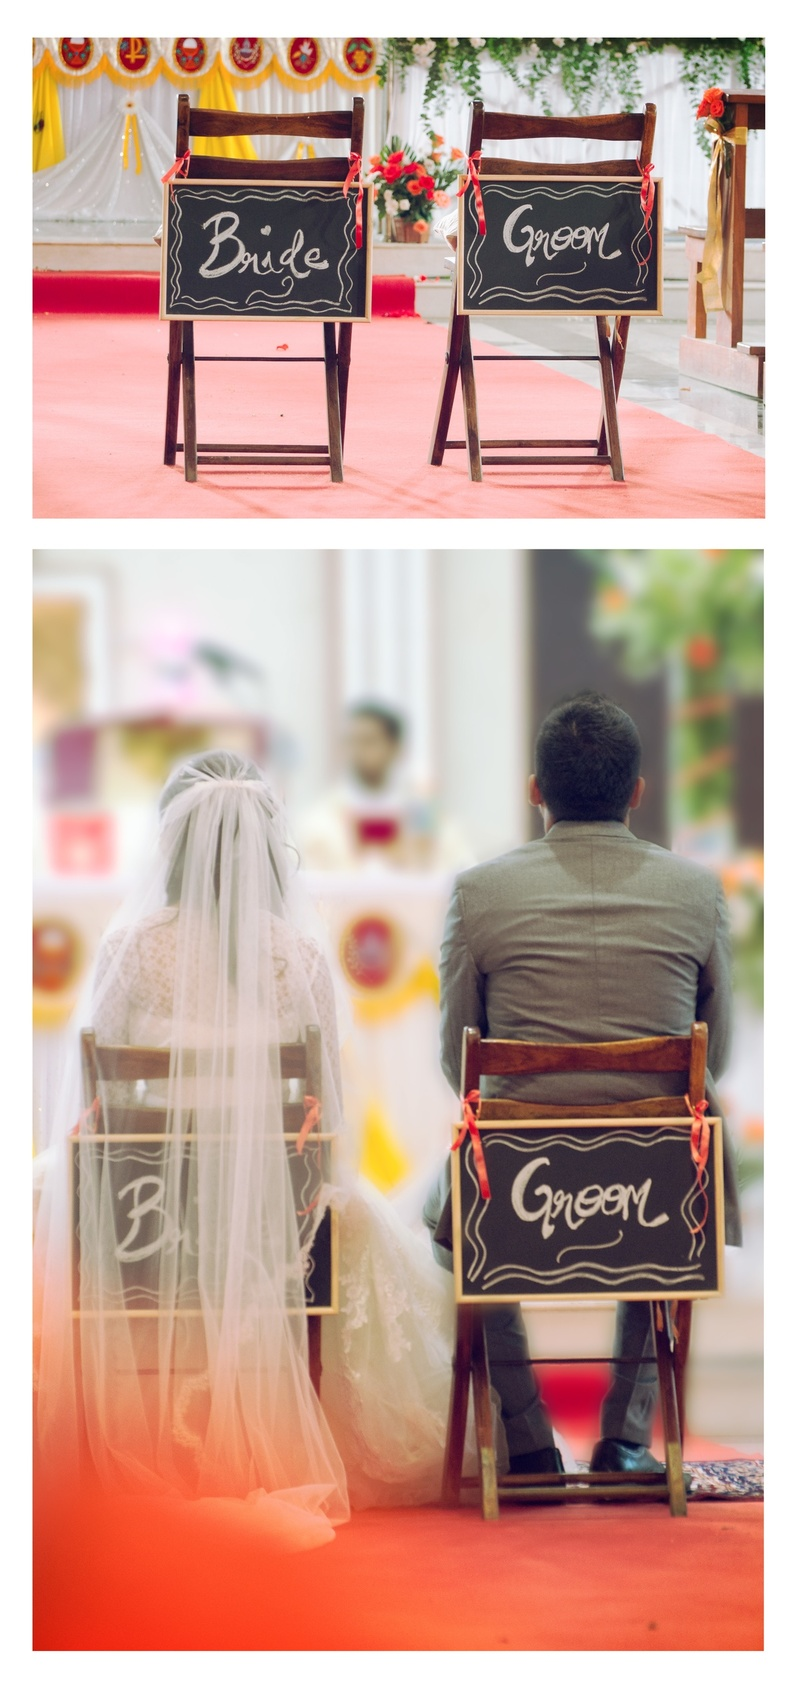 1429908131_Bride_and_groom_slates_collage2